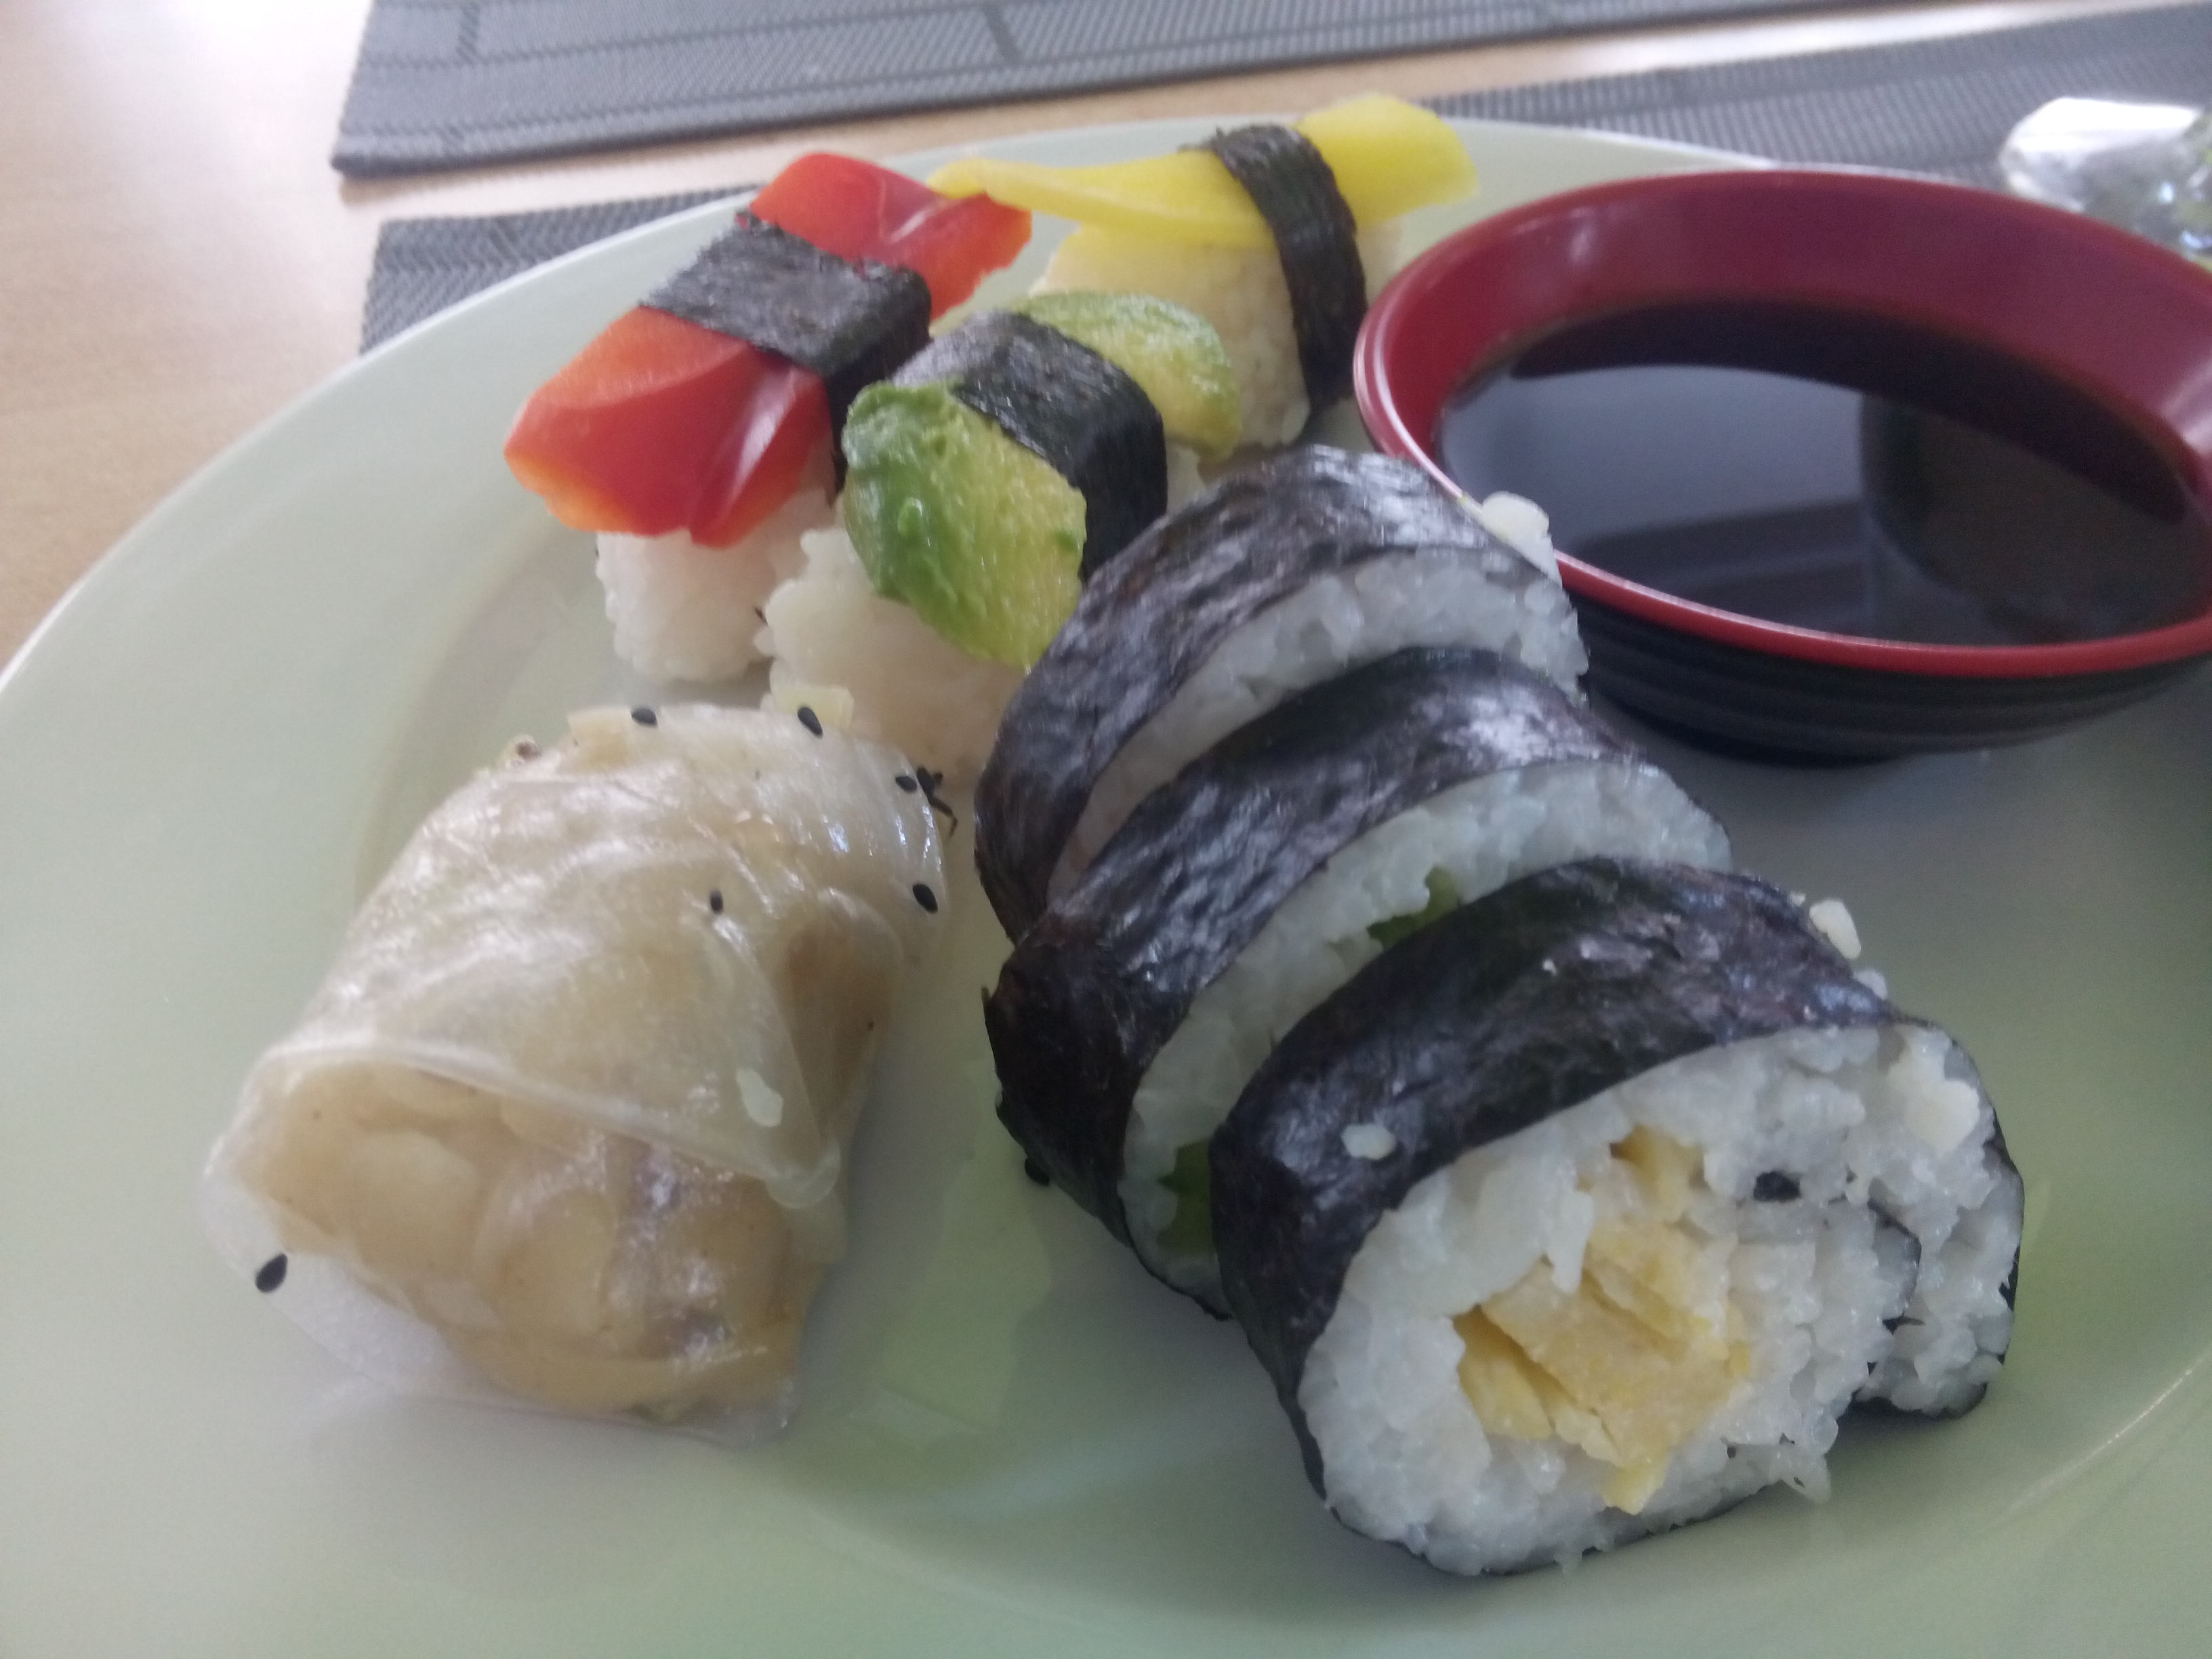 A white plate with sushi rolls and summer rolls and a pot of soya sauce